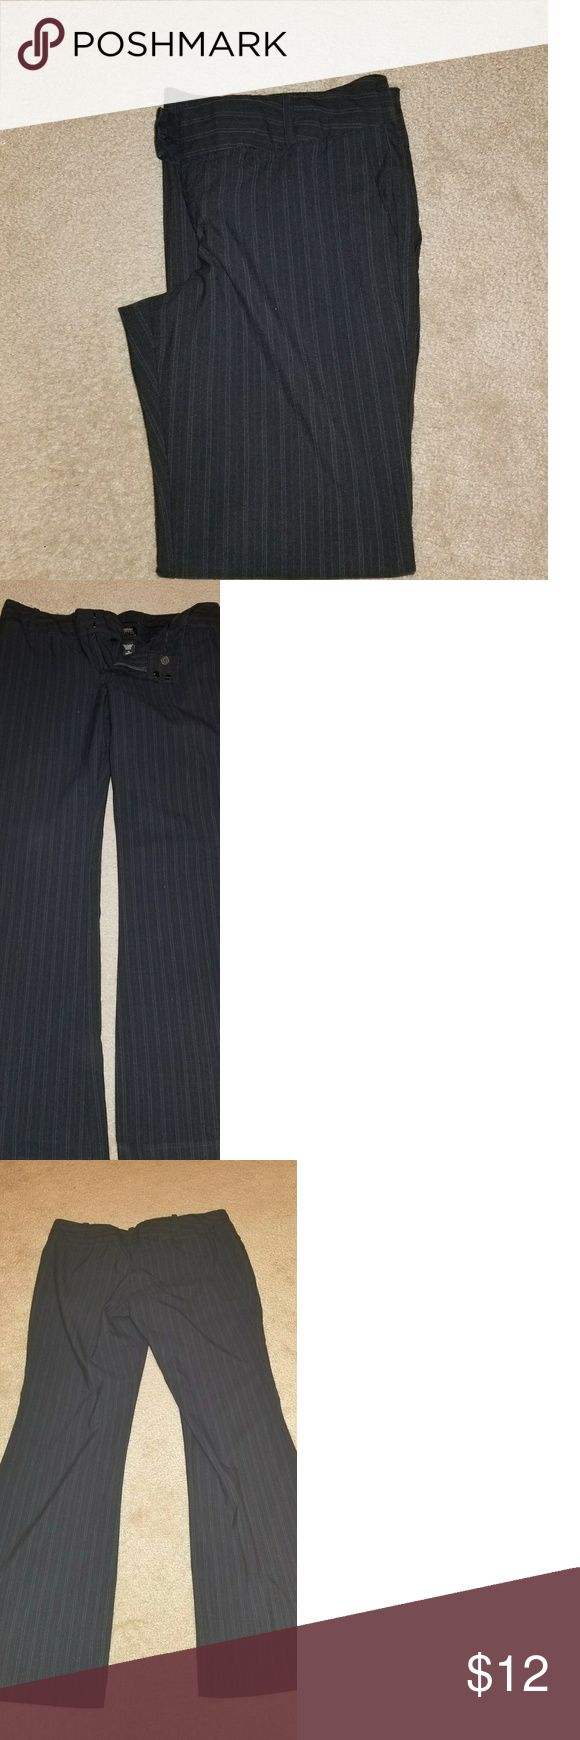 """Massimo LADIES DRESS PANTS Navy Blue pin strip Massimo Stretch, Ladies Dress Pants/Trousers. Inseam 32"""". Gently used, excellent condition. Massimo Pants Trousers"""